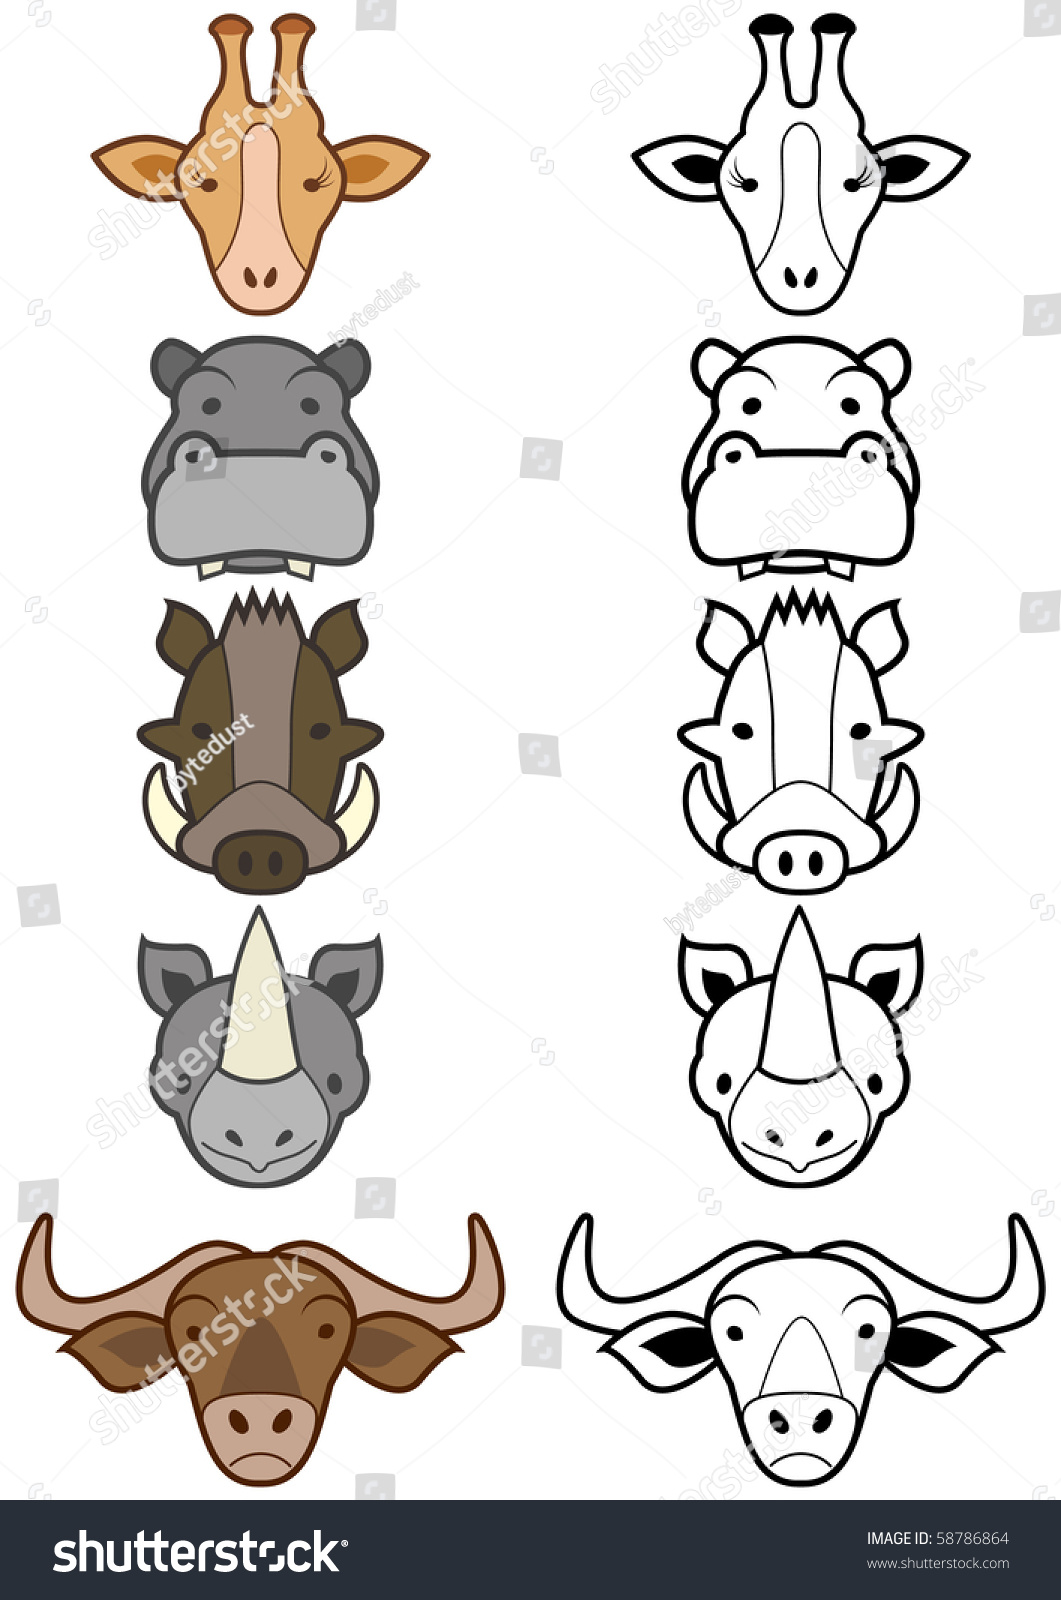 Vector Illustration Set Of Different Cartoon Wild Or Zoo